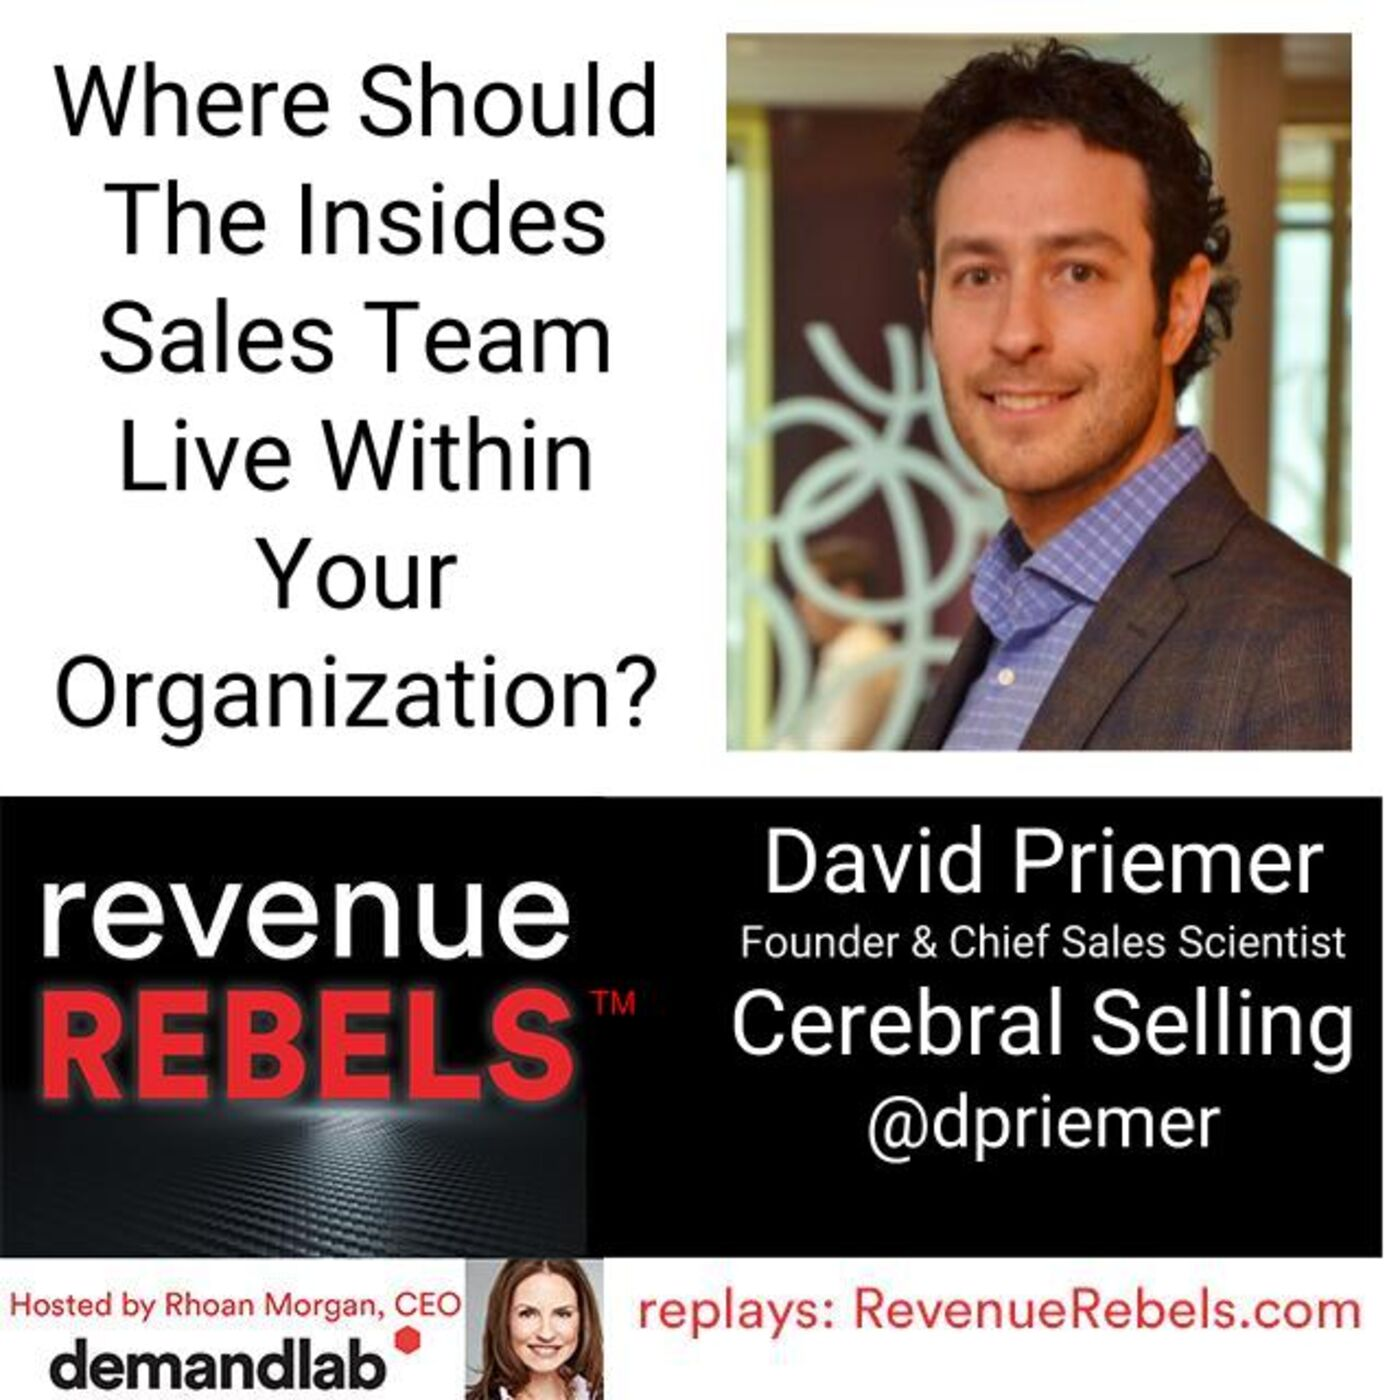 Where Should The Insides Sales Team Live Within Your Organization?